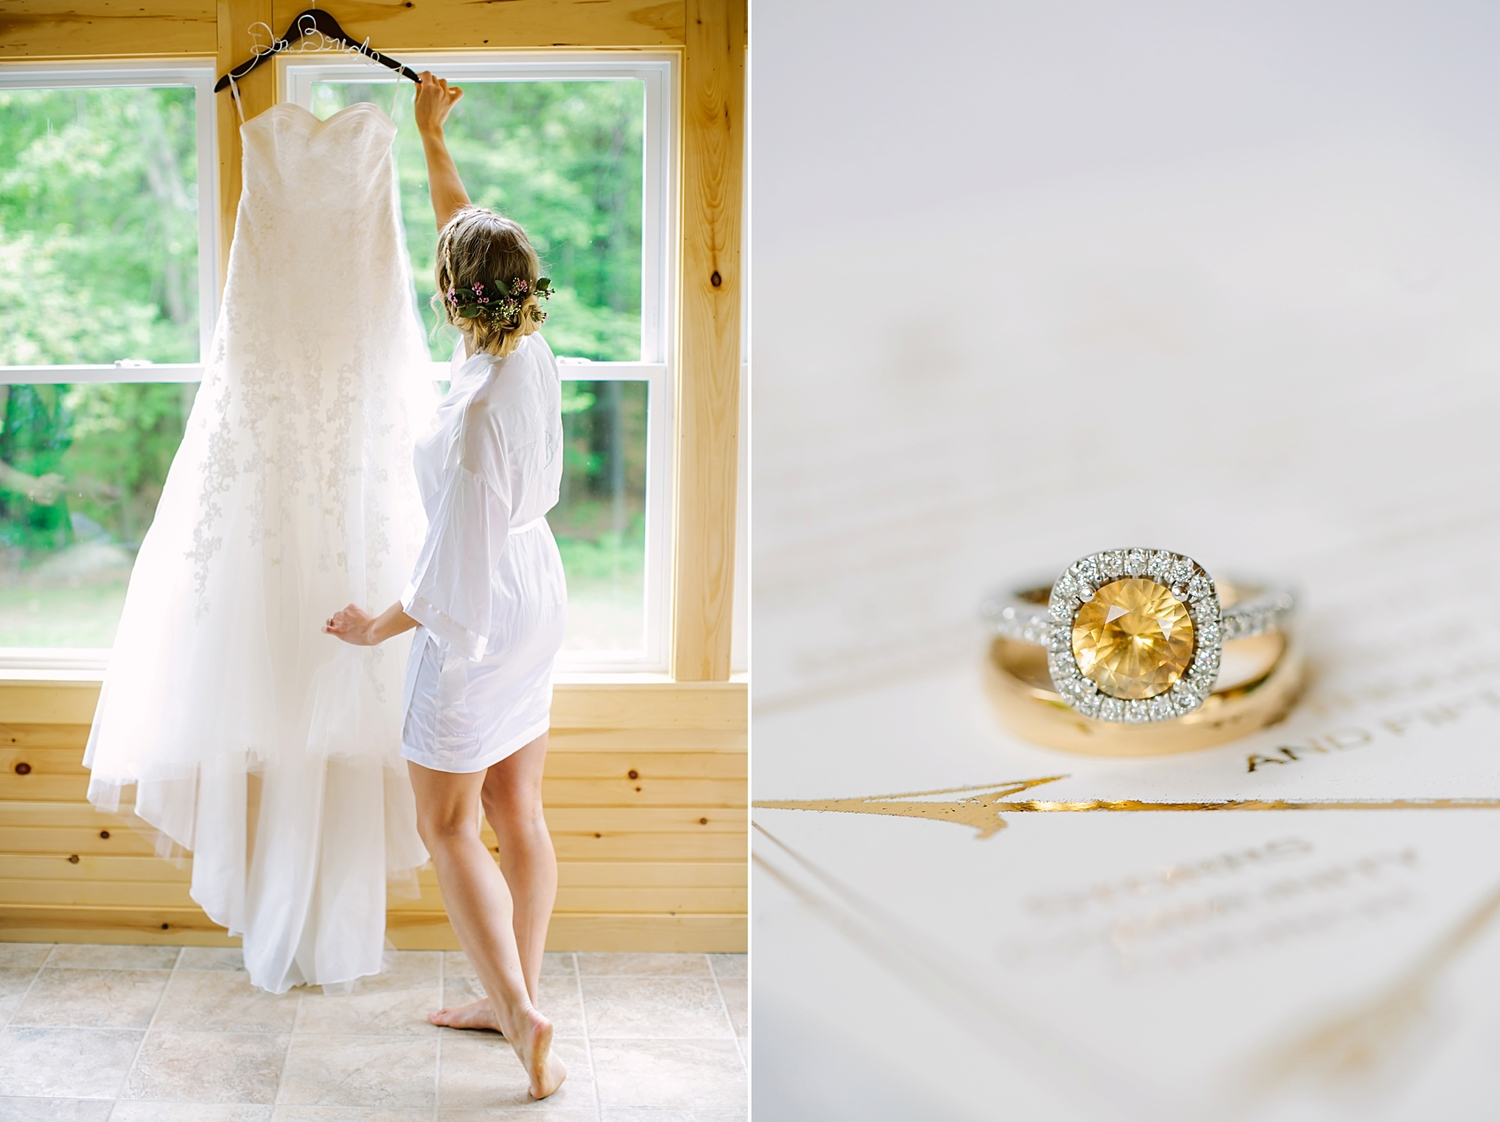 a backyard wedding handmade with love in storrs ct u2014 love u0026 light